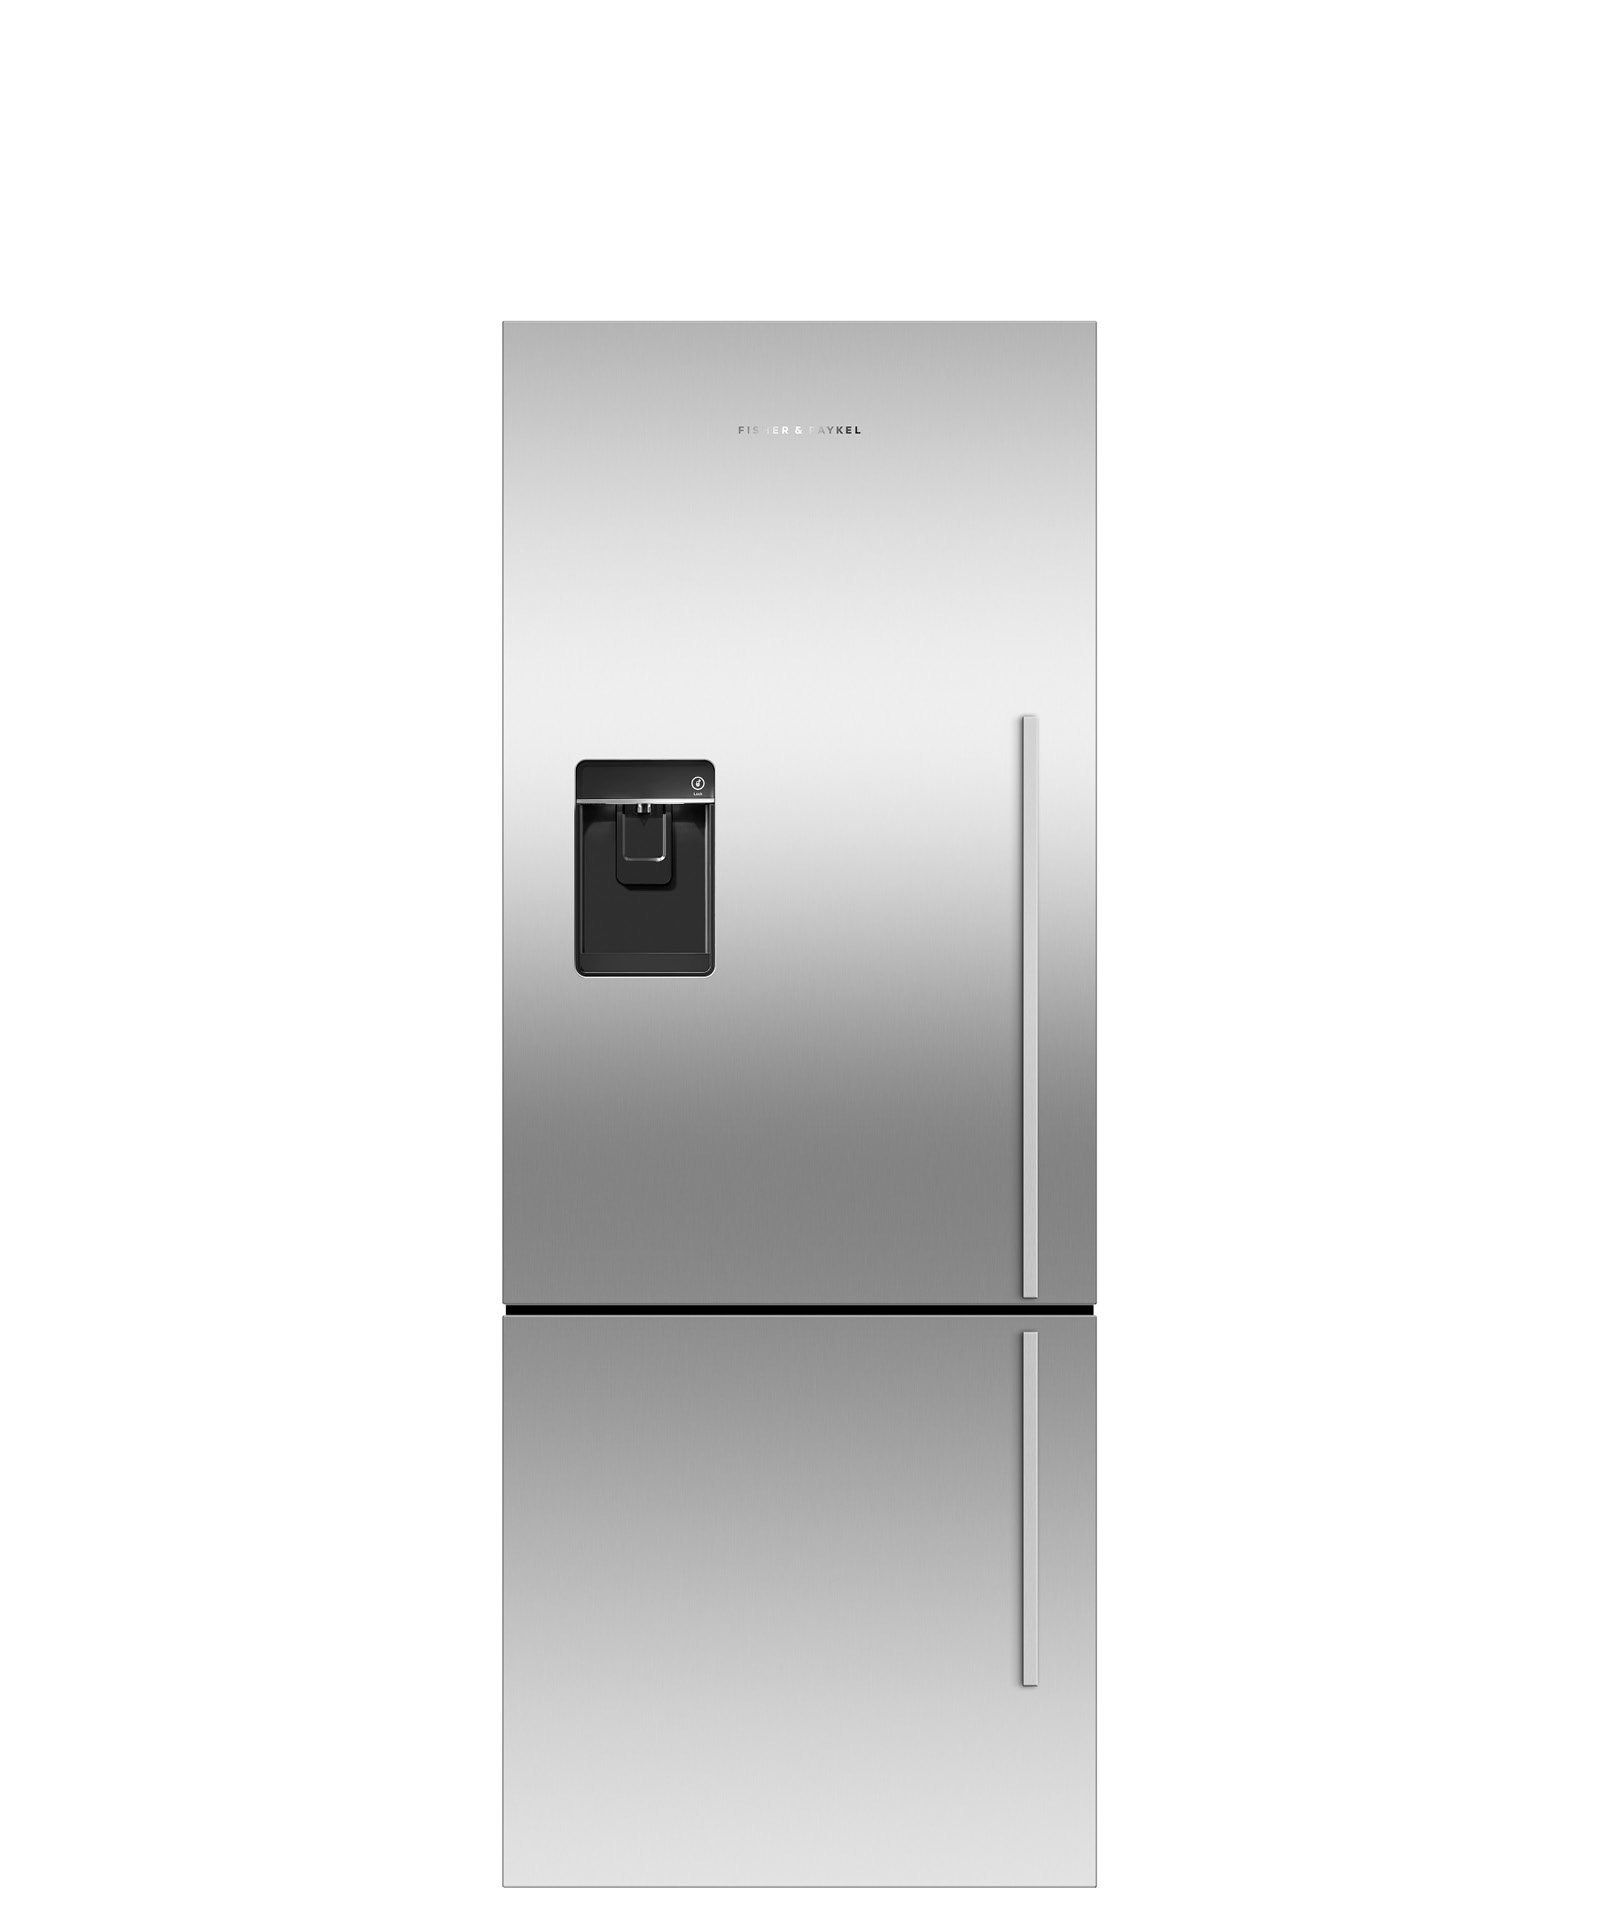 Fisher and Paykel Counter Depth Refrigerator 13.5 cu ft, Ice & Water